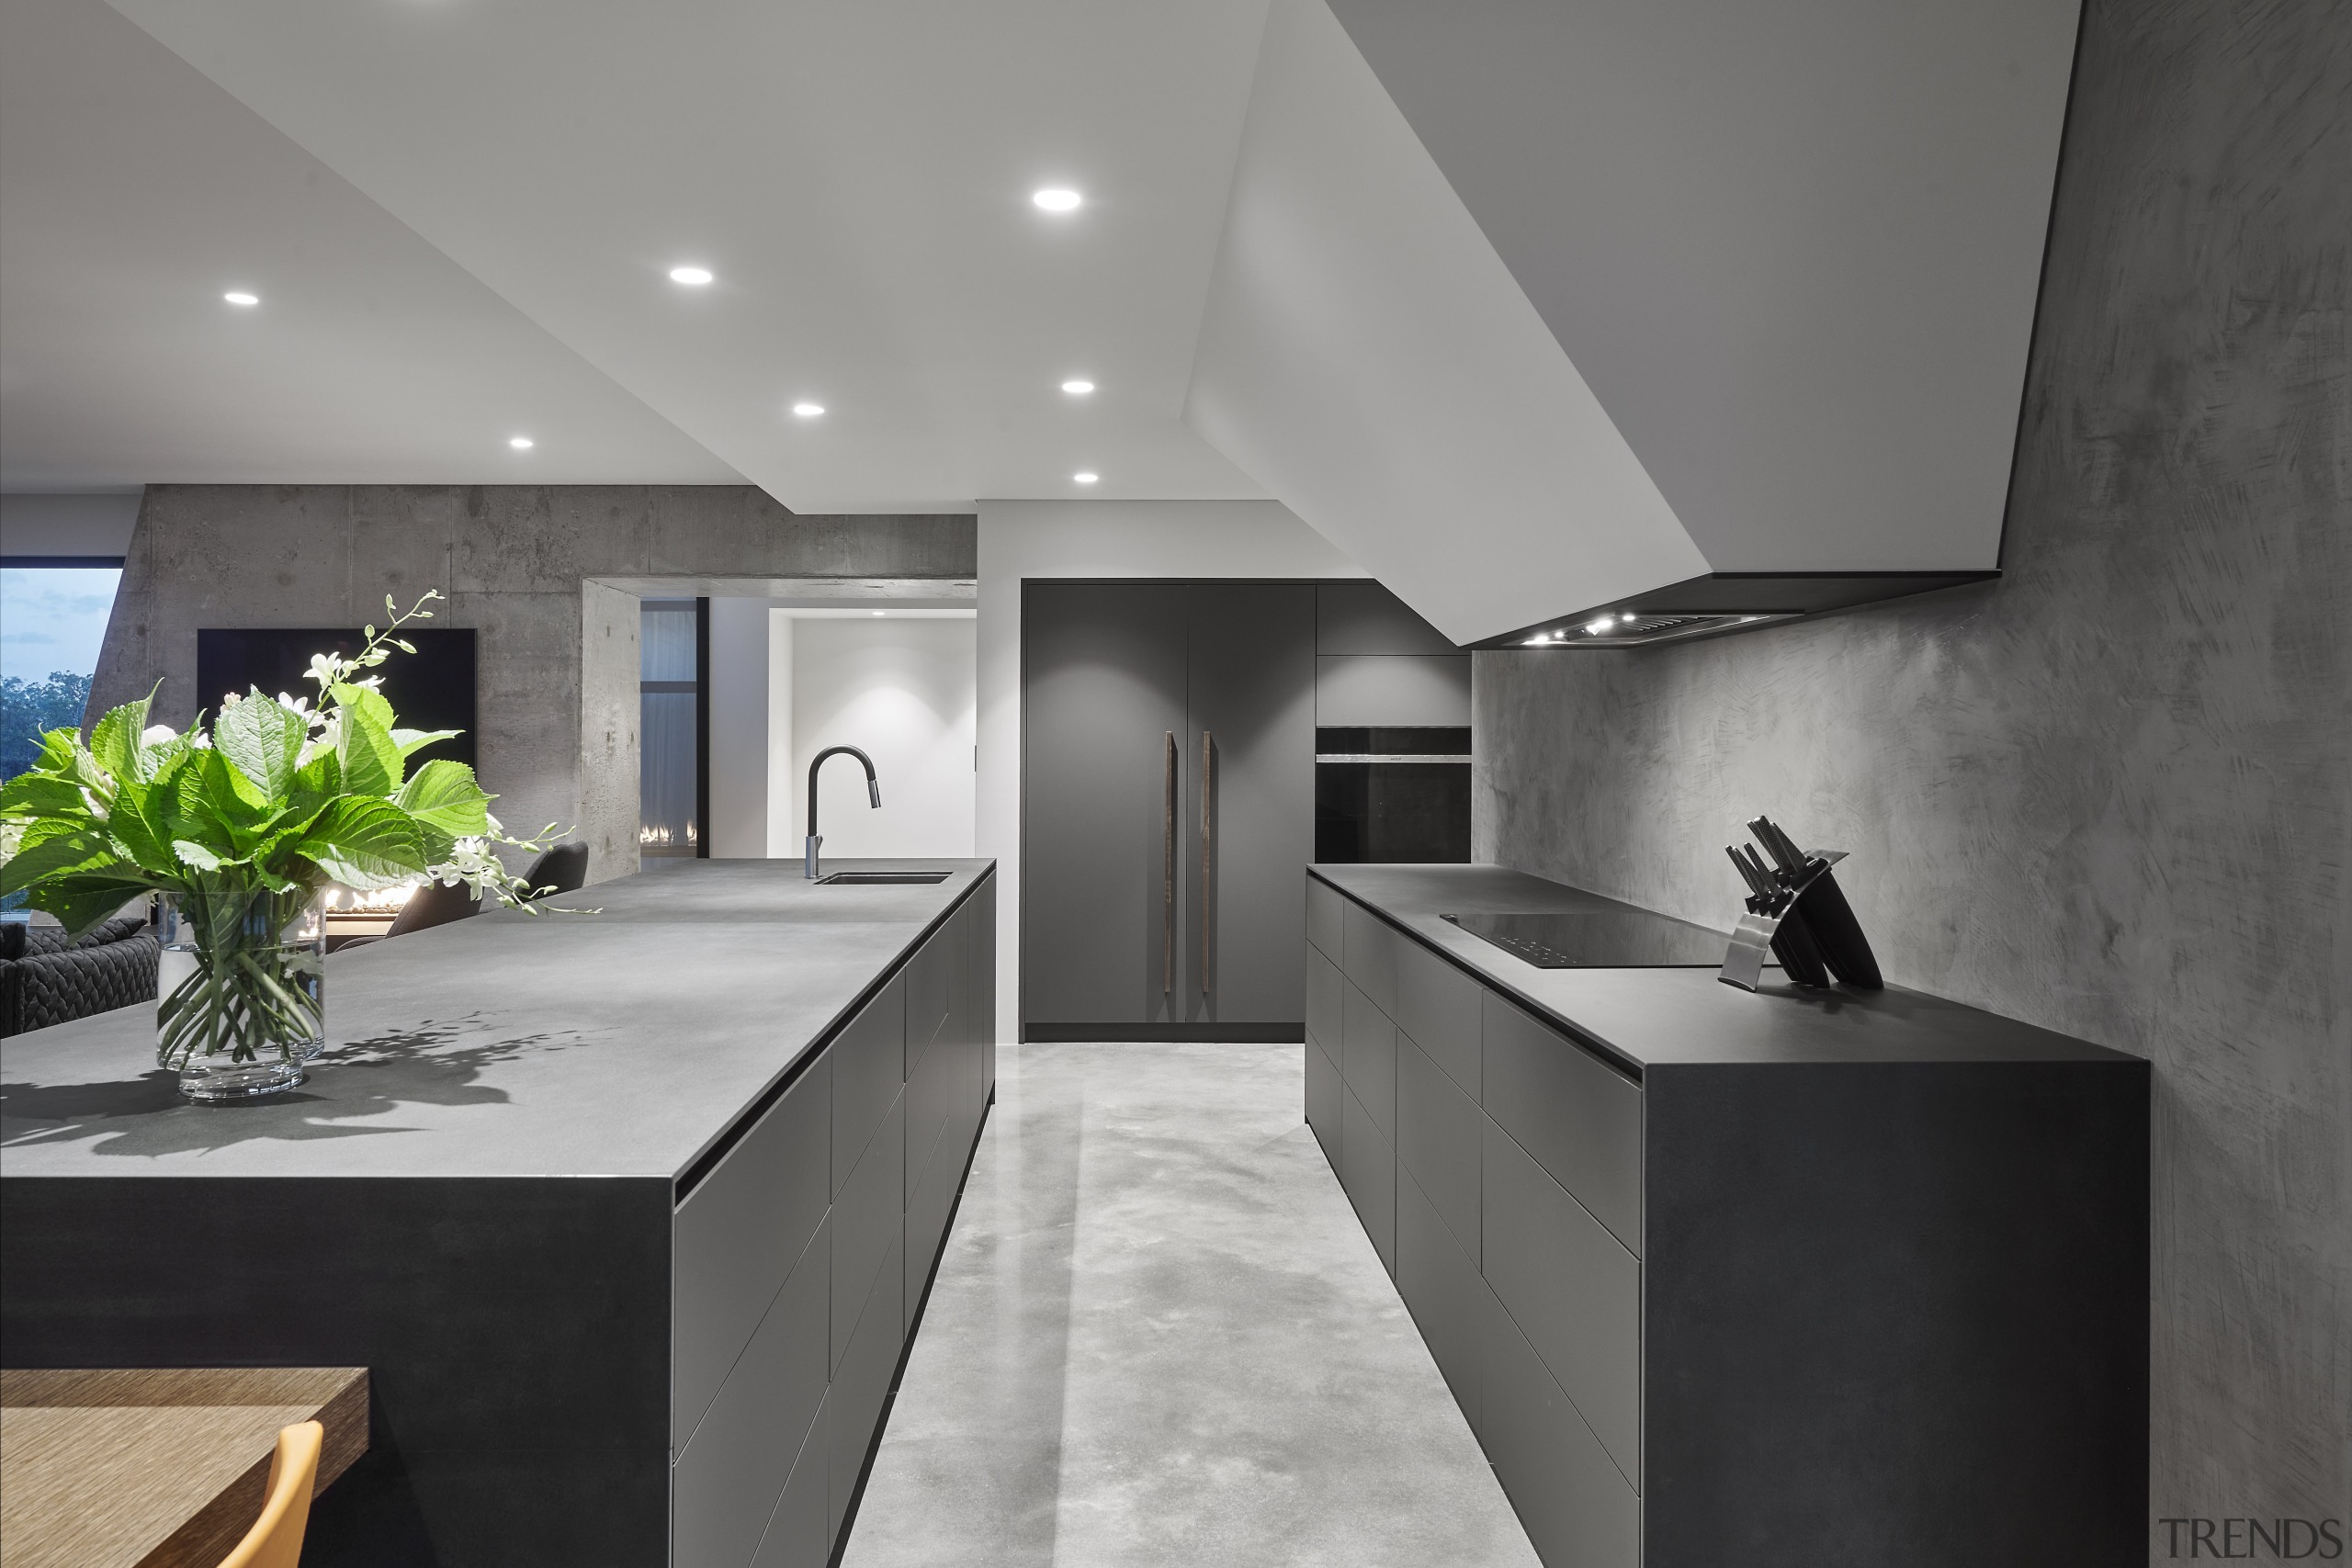 Recessed pulls accentuate the kitchen's minimalist lines while